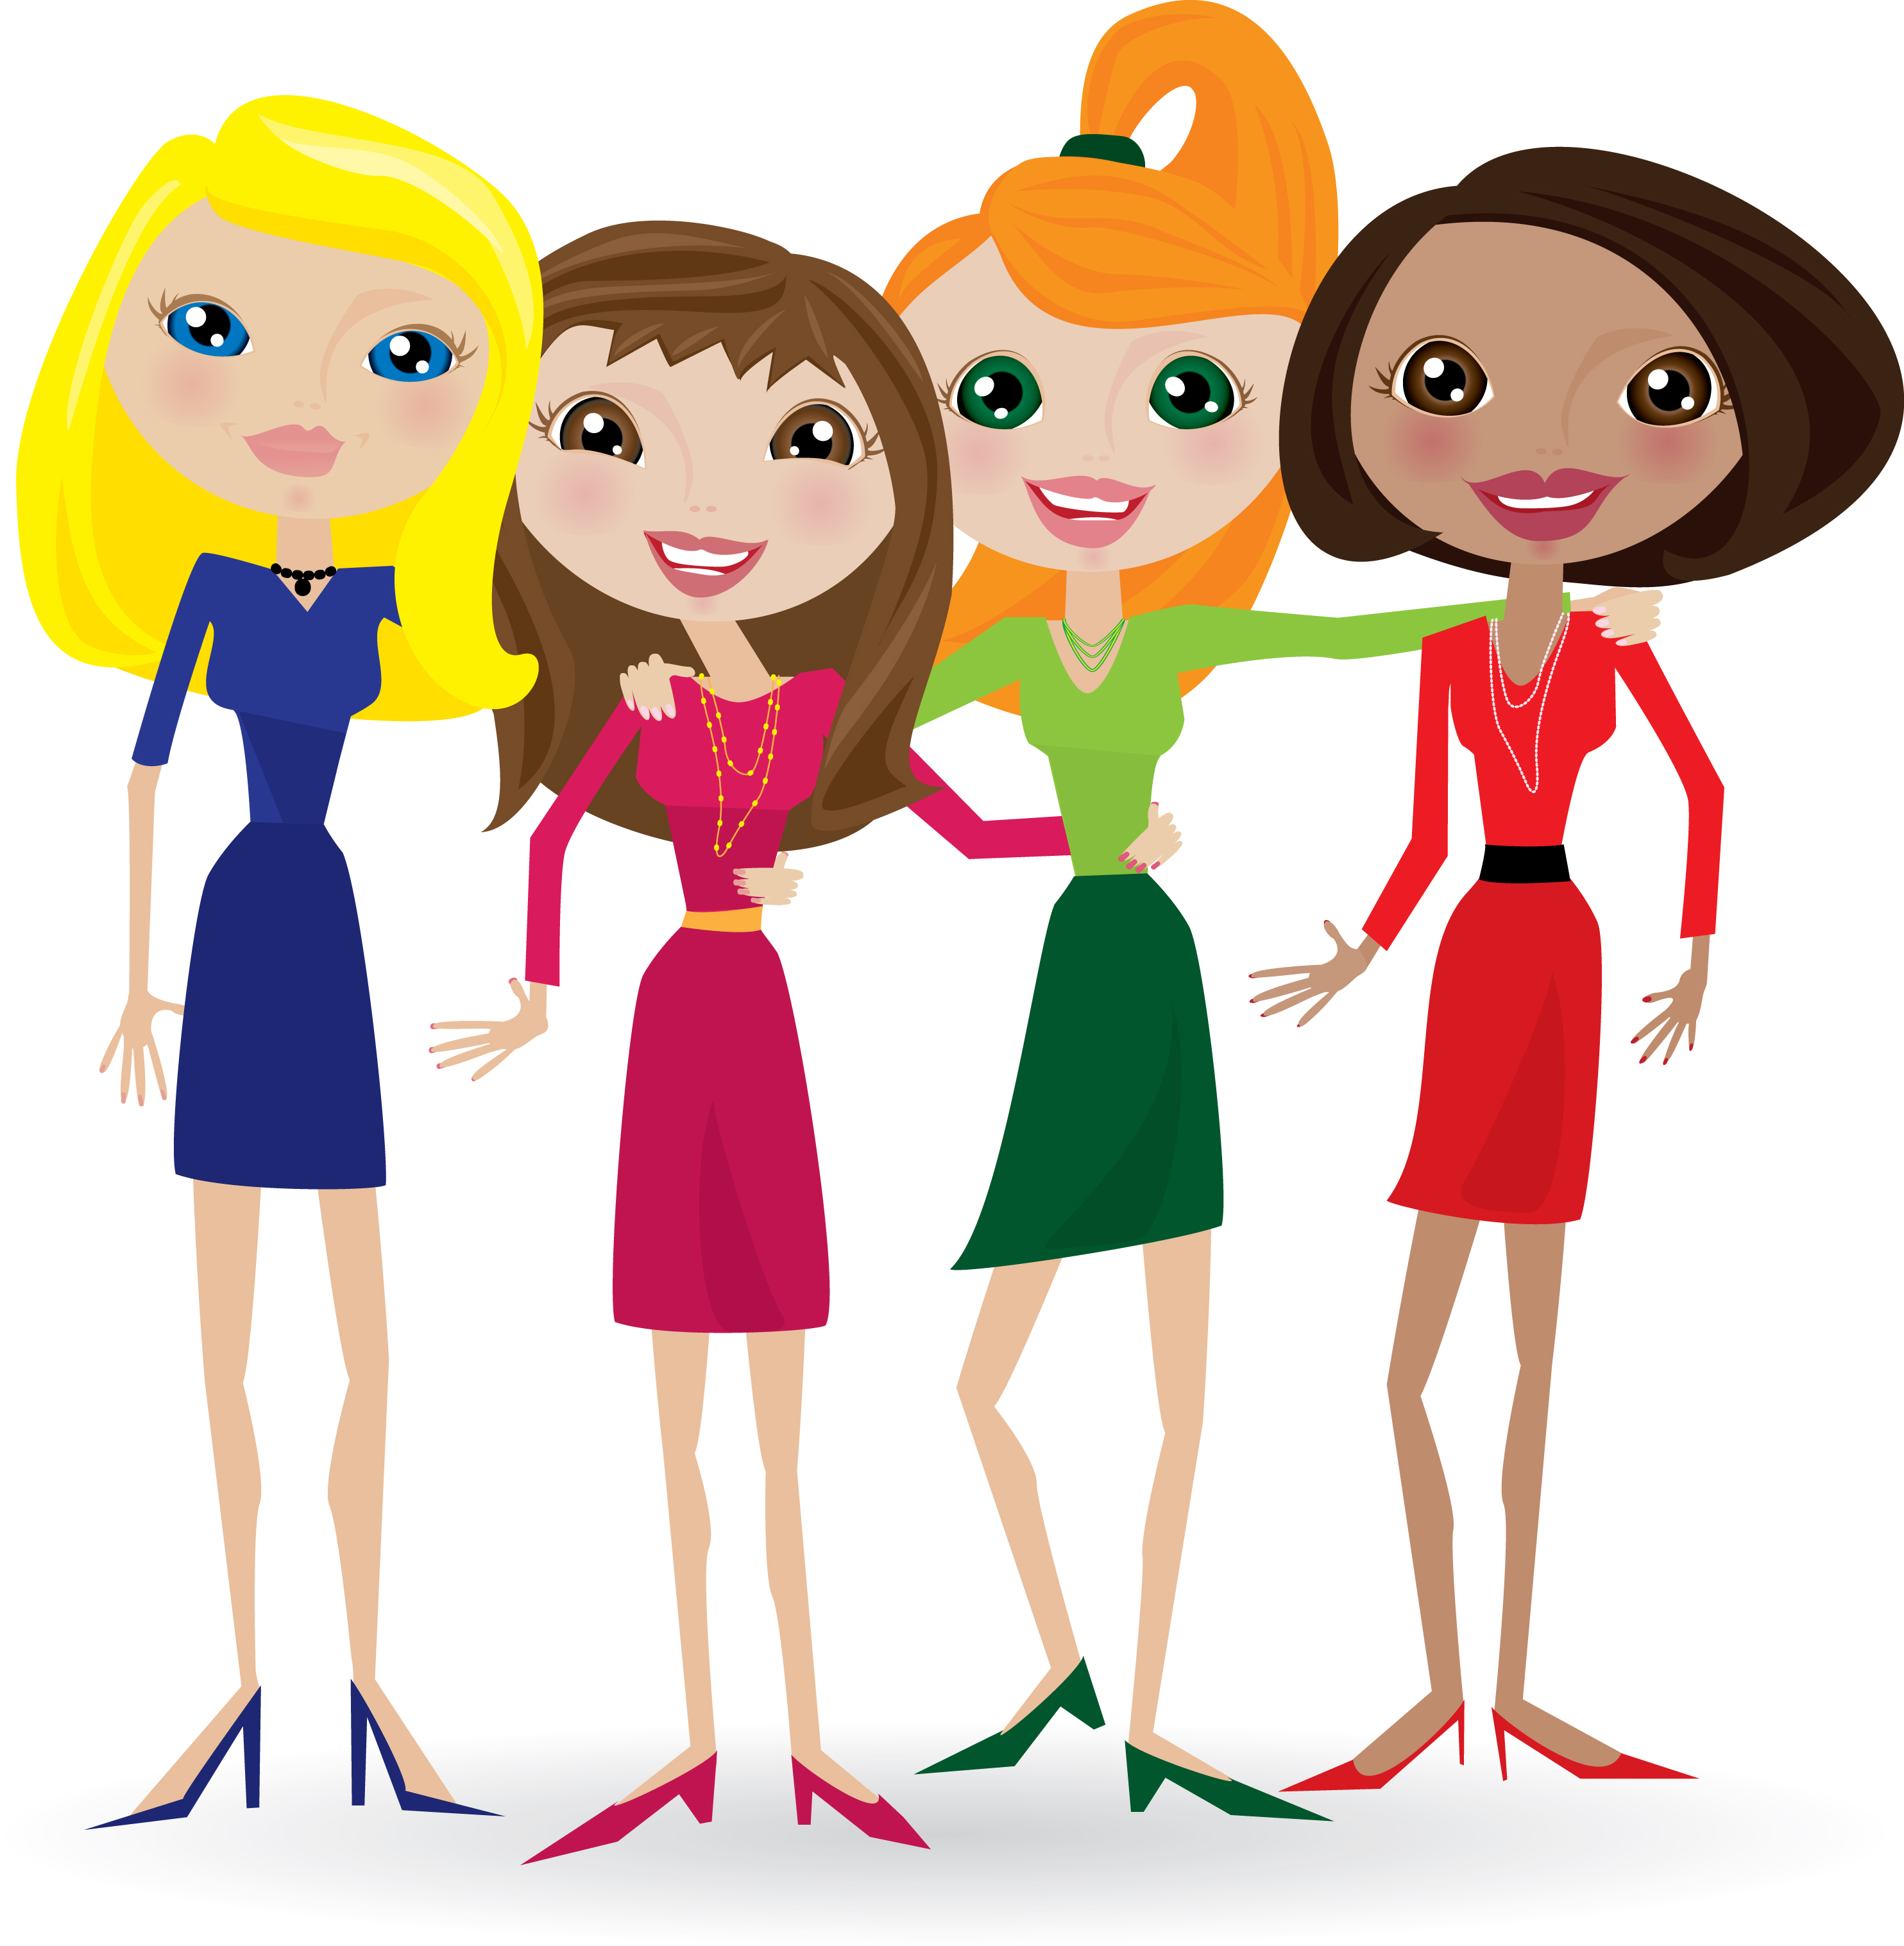 Birthday girl with friends clipart picture black and white stock Free Animated Friends Cliparts, Download Free Clip Art, Free Clip ... picture black and white stock